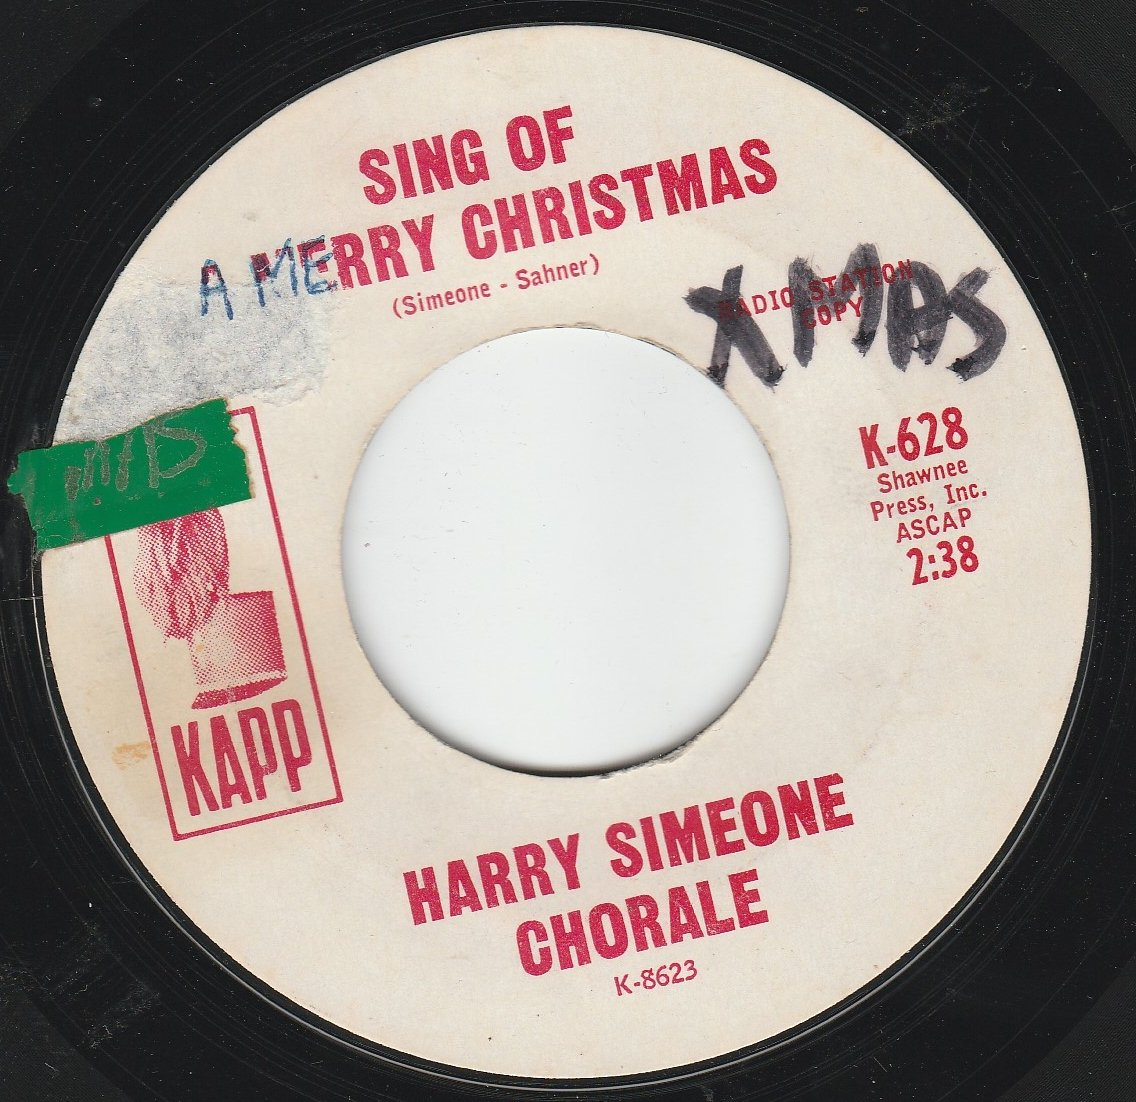 Harry Simeone Chorale - 45vinylrecord Sing Of A Merry Christmas/O ...